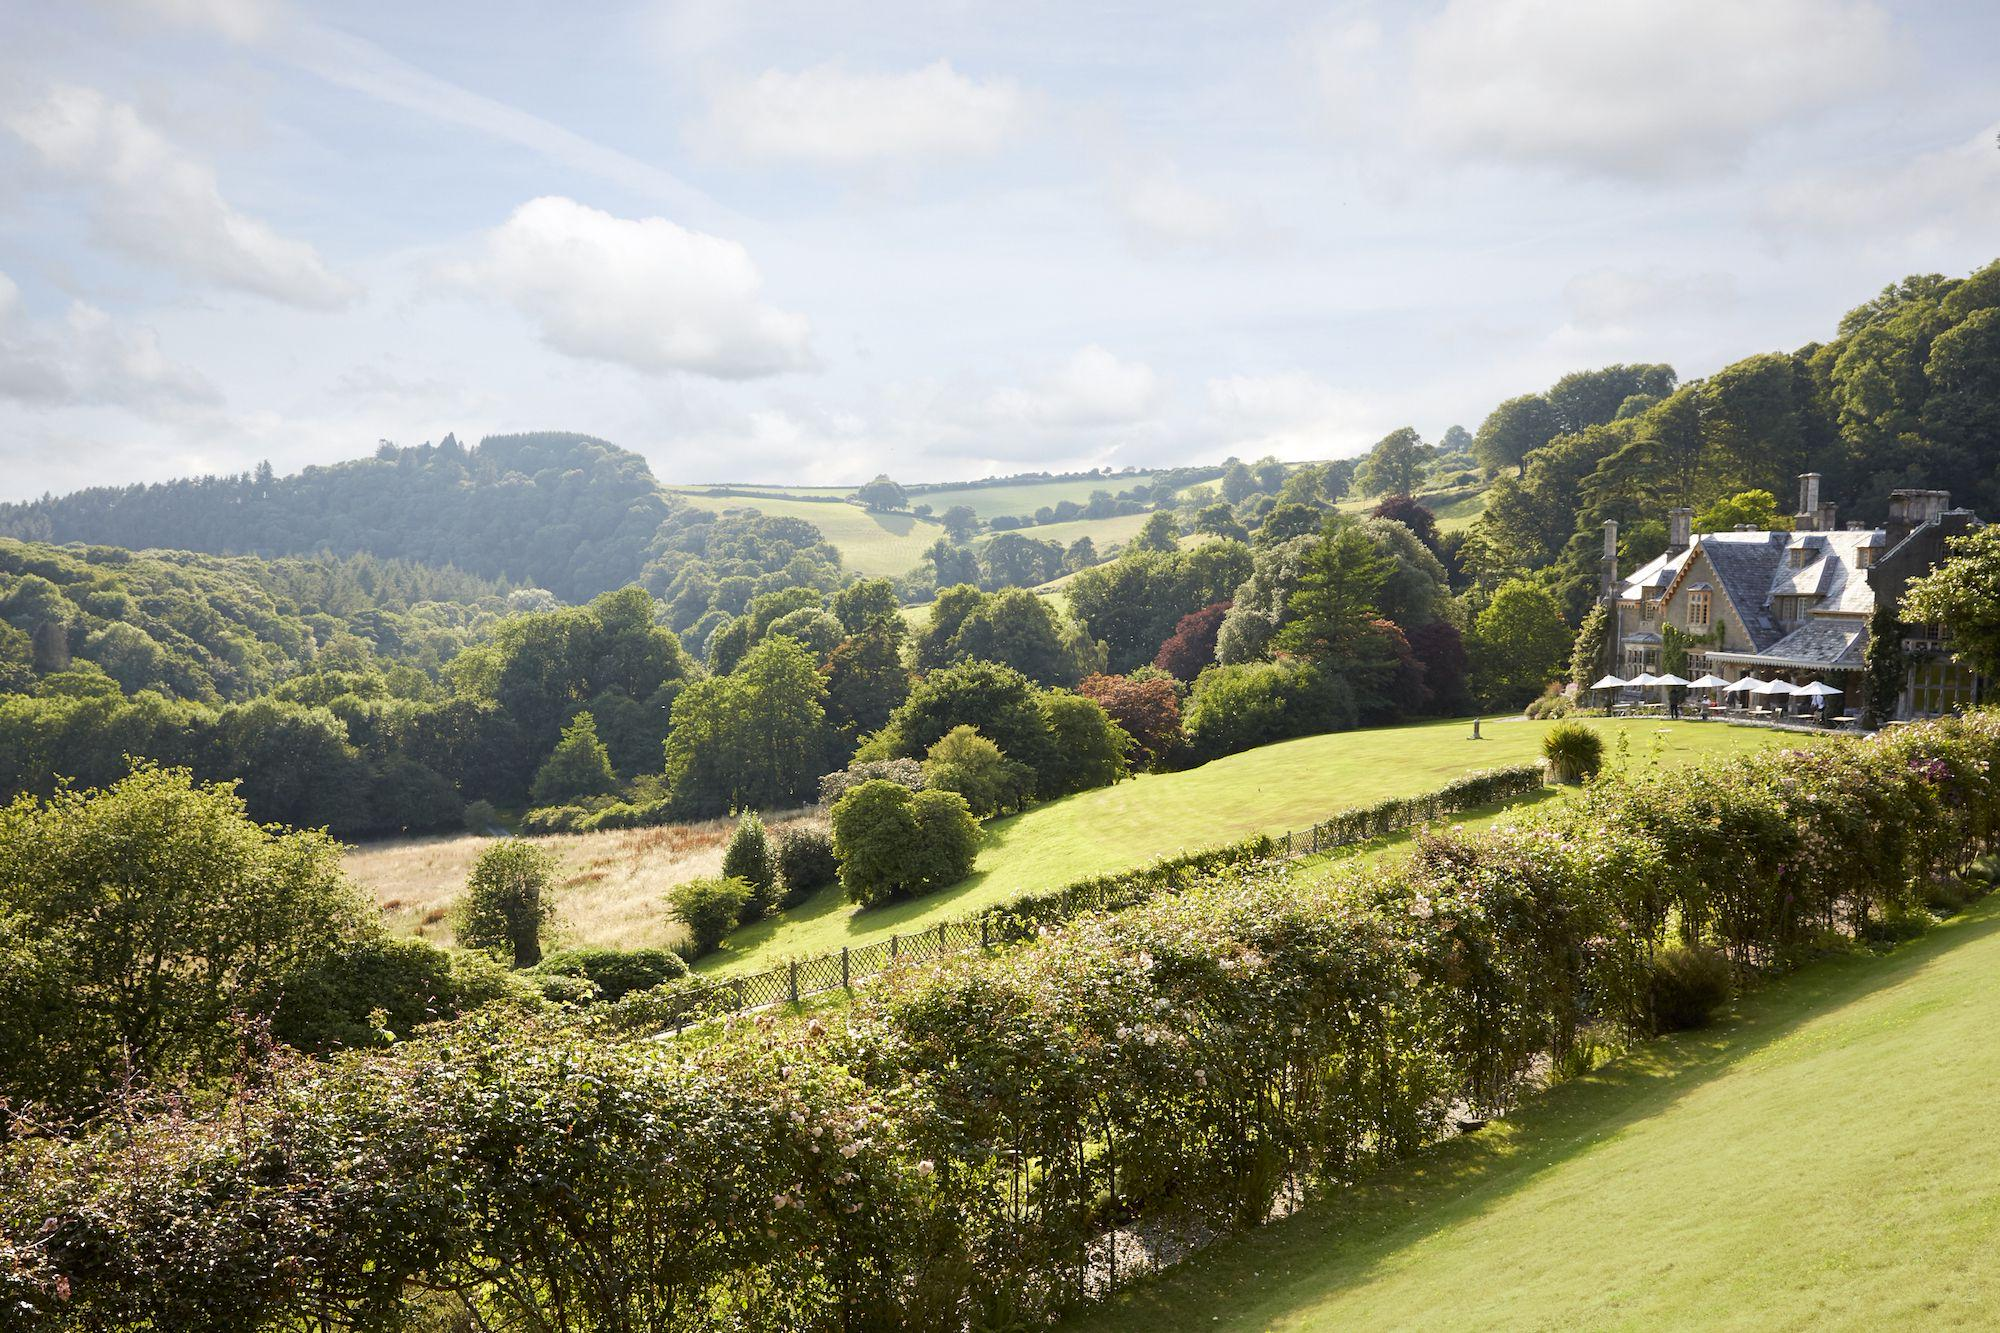 Hotels, Cottages, B&Bs & Glamping in Devon